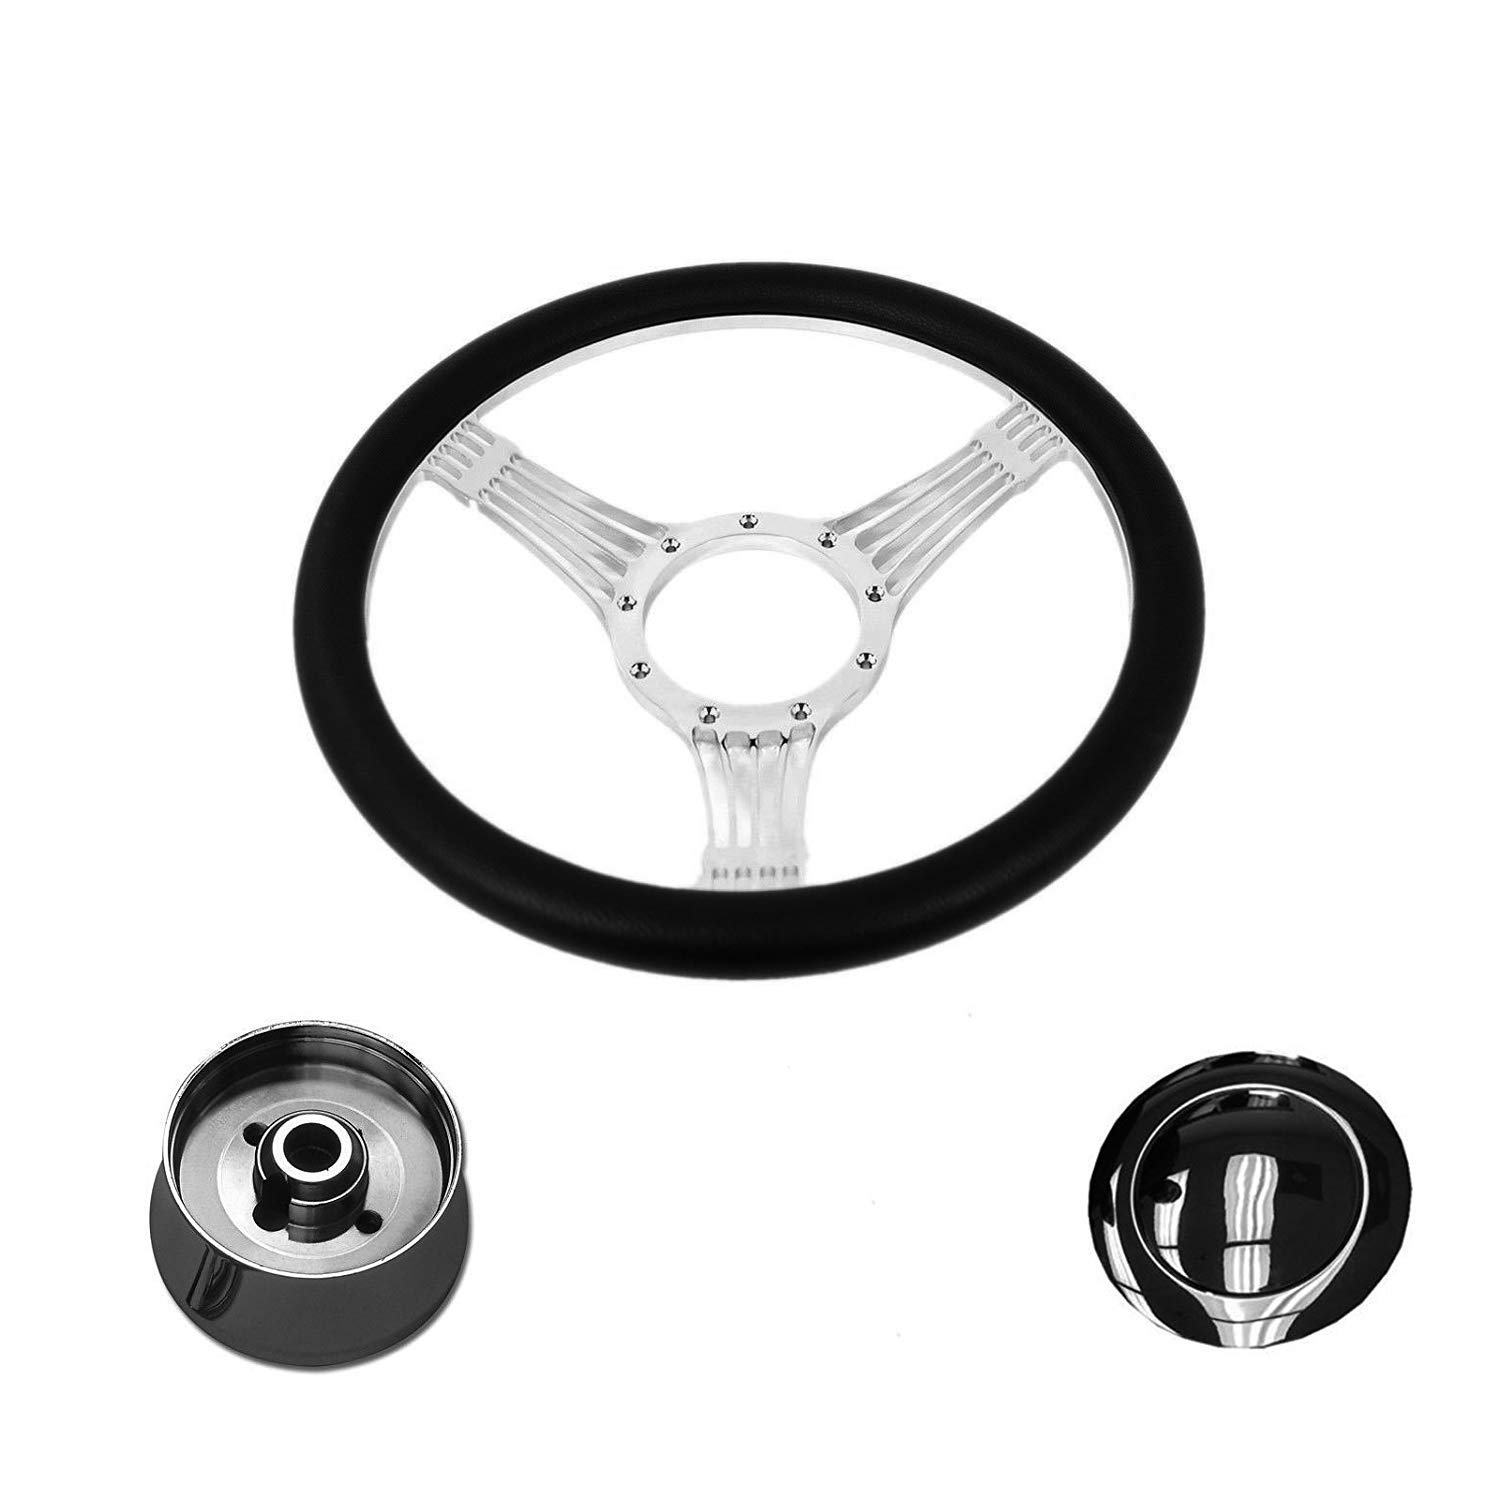 DEMOTOR Hot Rod 14'' Chrome Billet Banjo Style Steering Wheel Adapter Horn Button & Leather Grip Included